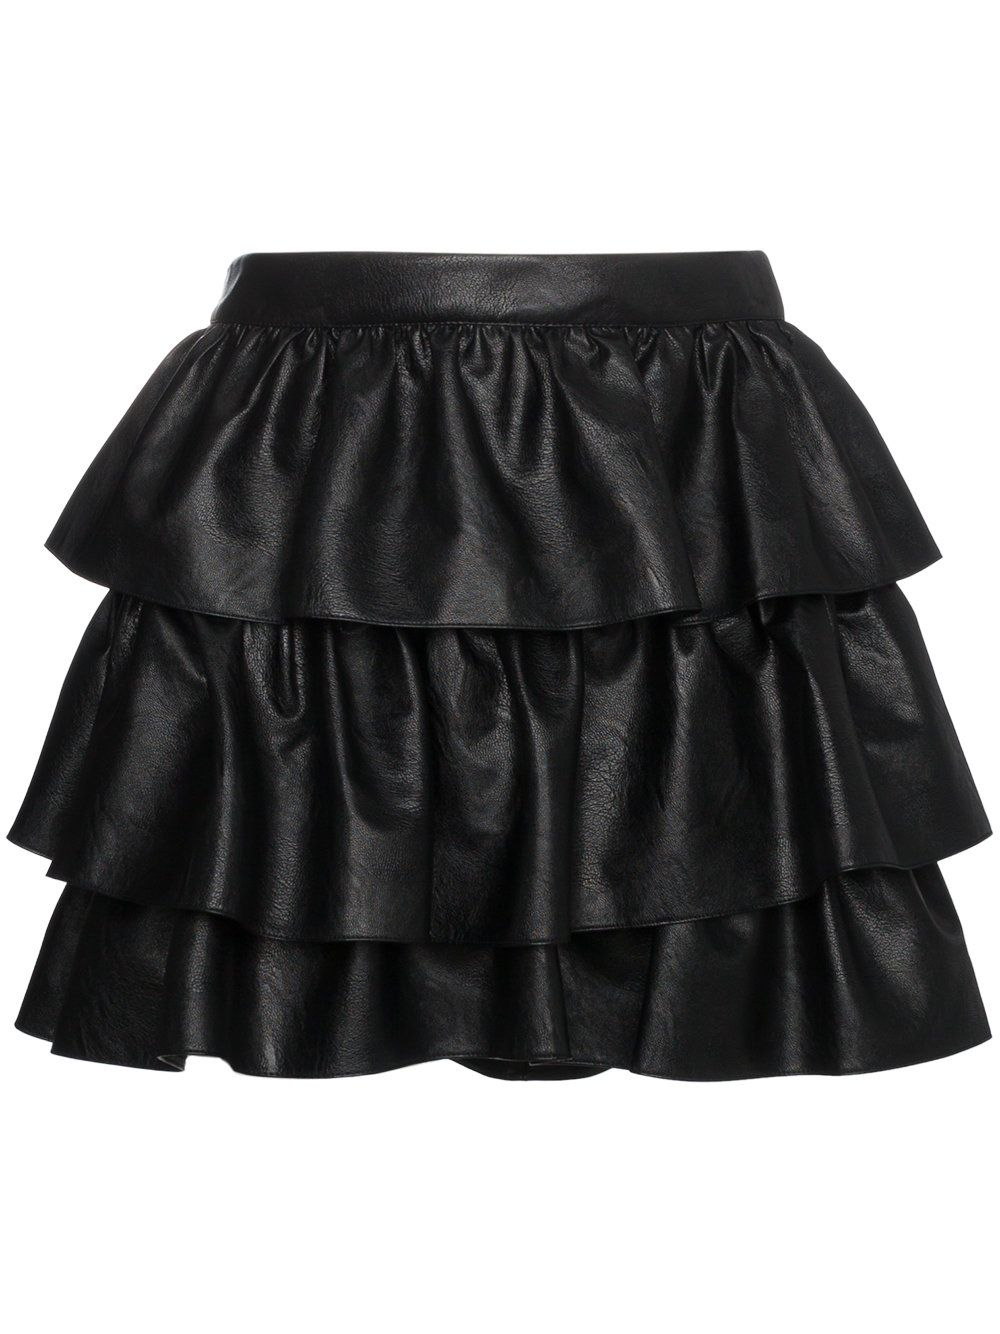 Stella Mccartney Anika Tiered Faux Leather Mini Skirt In Black